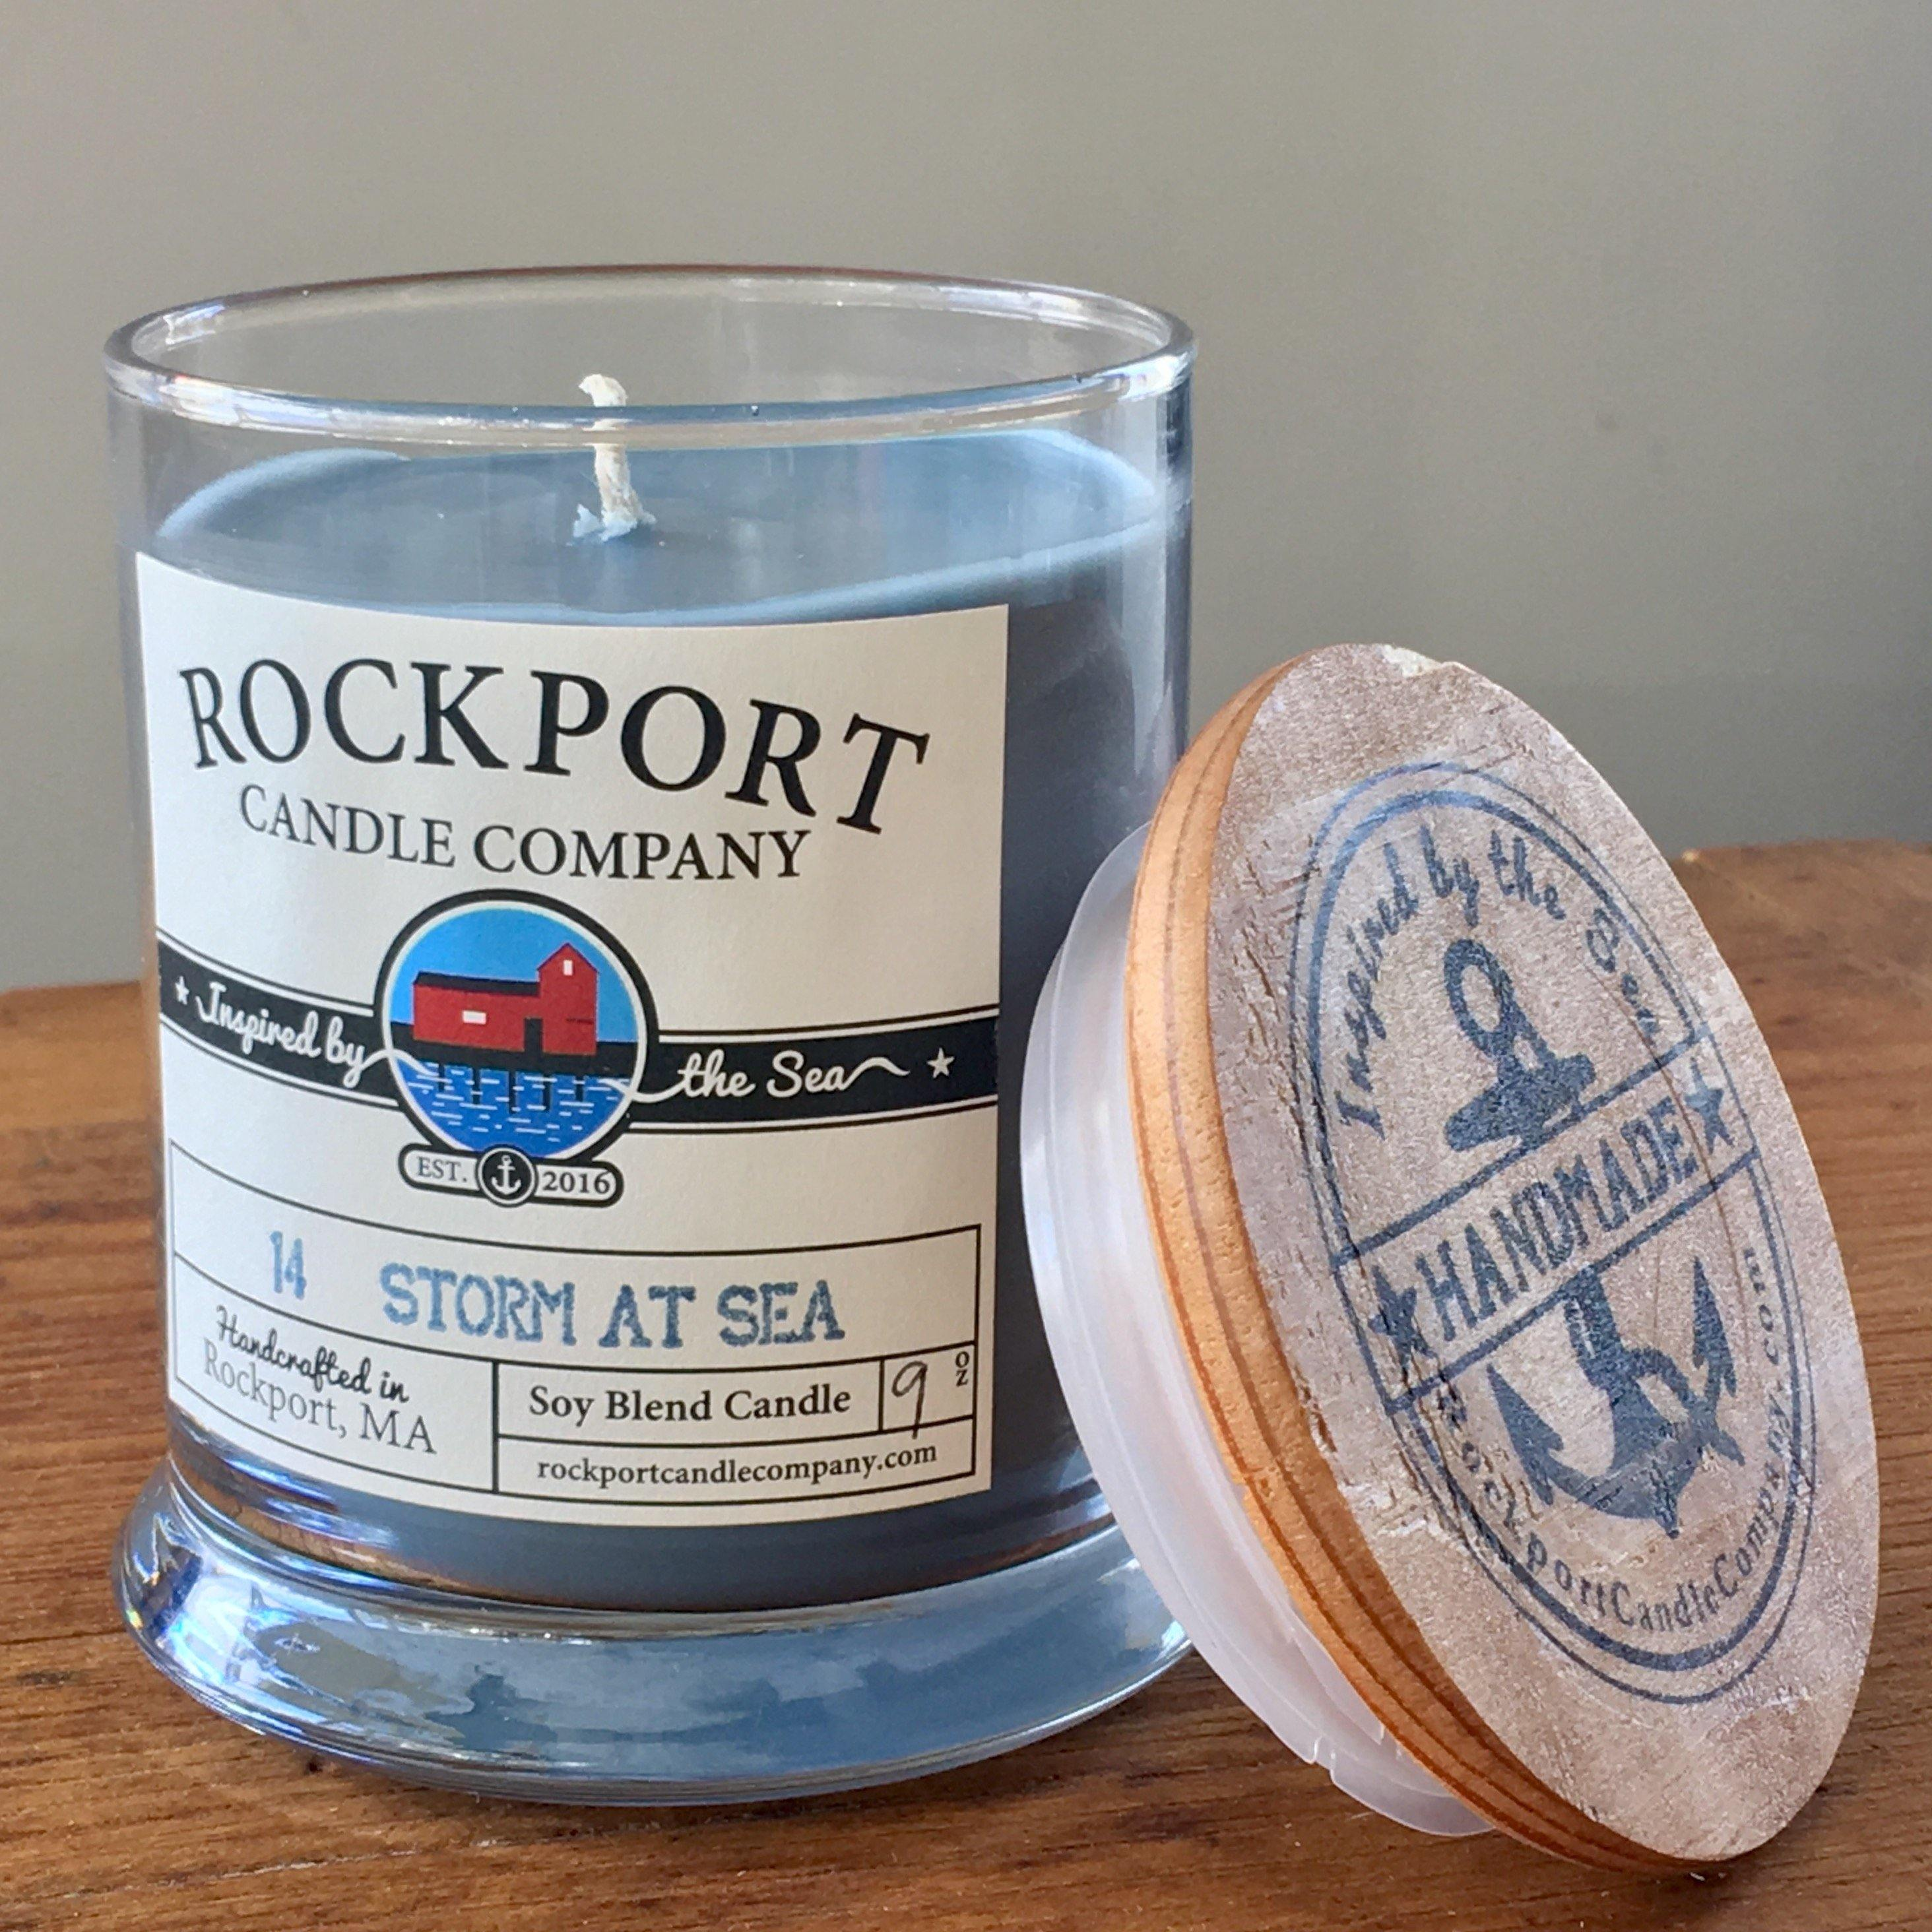 14 Storm at Sea Candle Rockport Candle Company